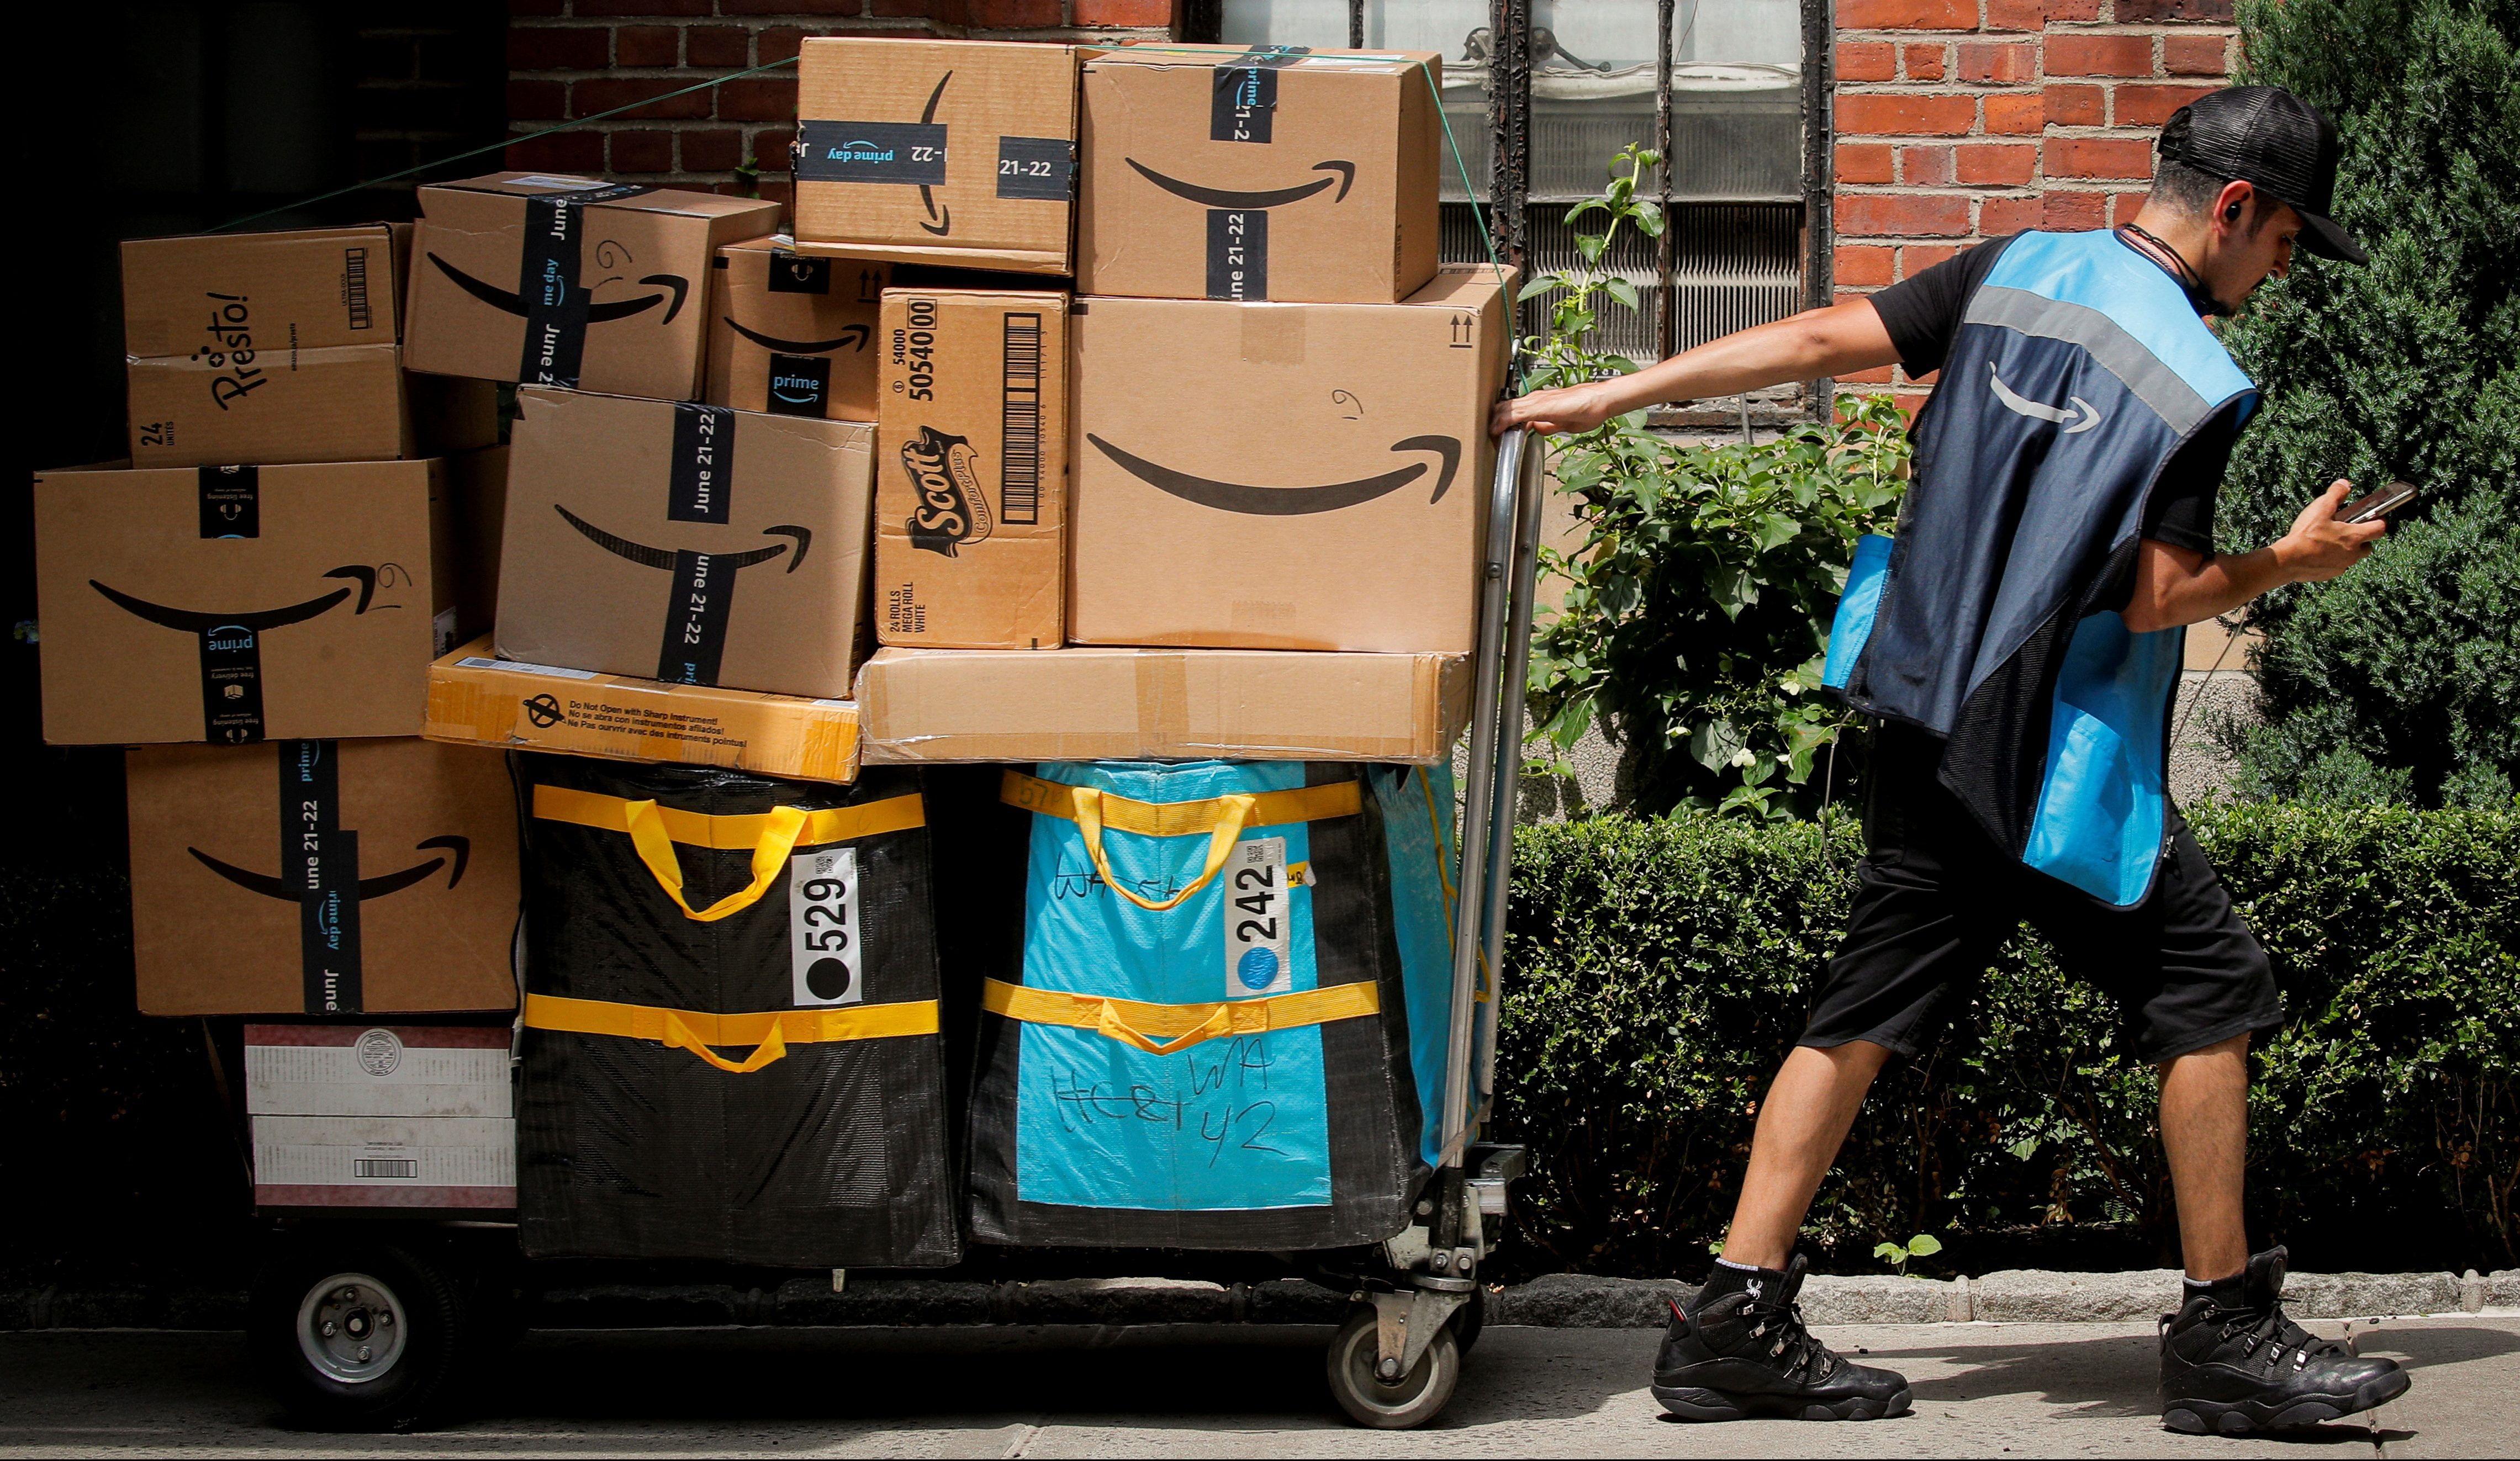 An Amazon delivery worker pulls a delivery cart full of packages